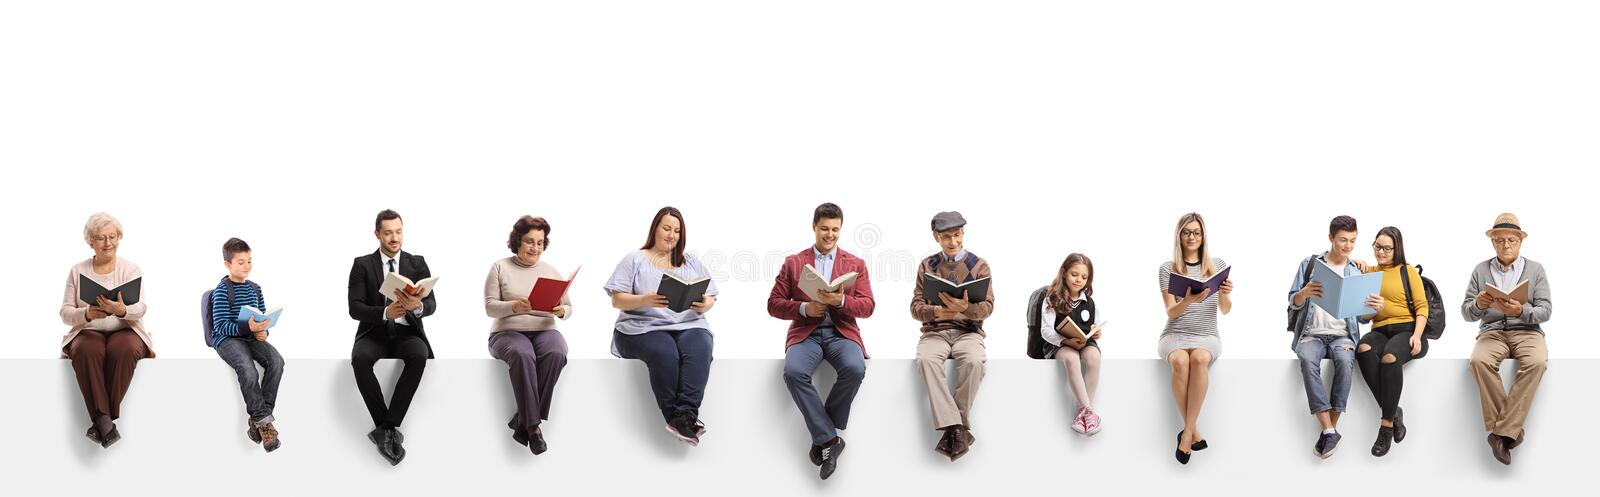 Old and young people sitting on a banner reading books. Isolated on white background royalty free stock photography